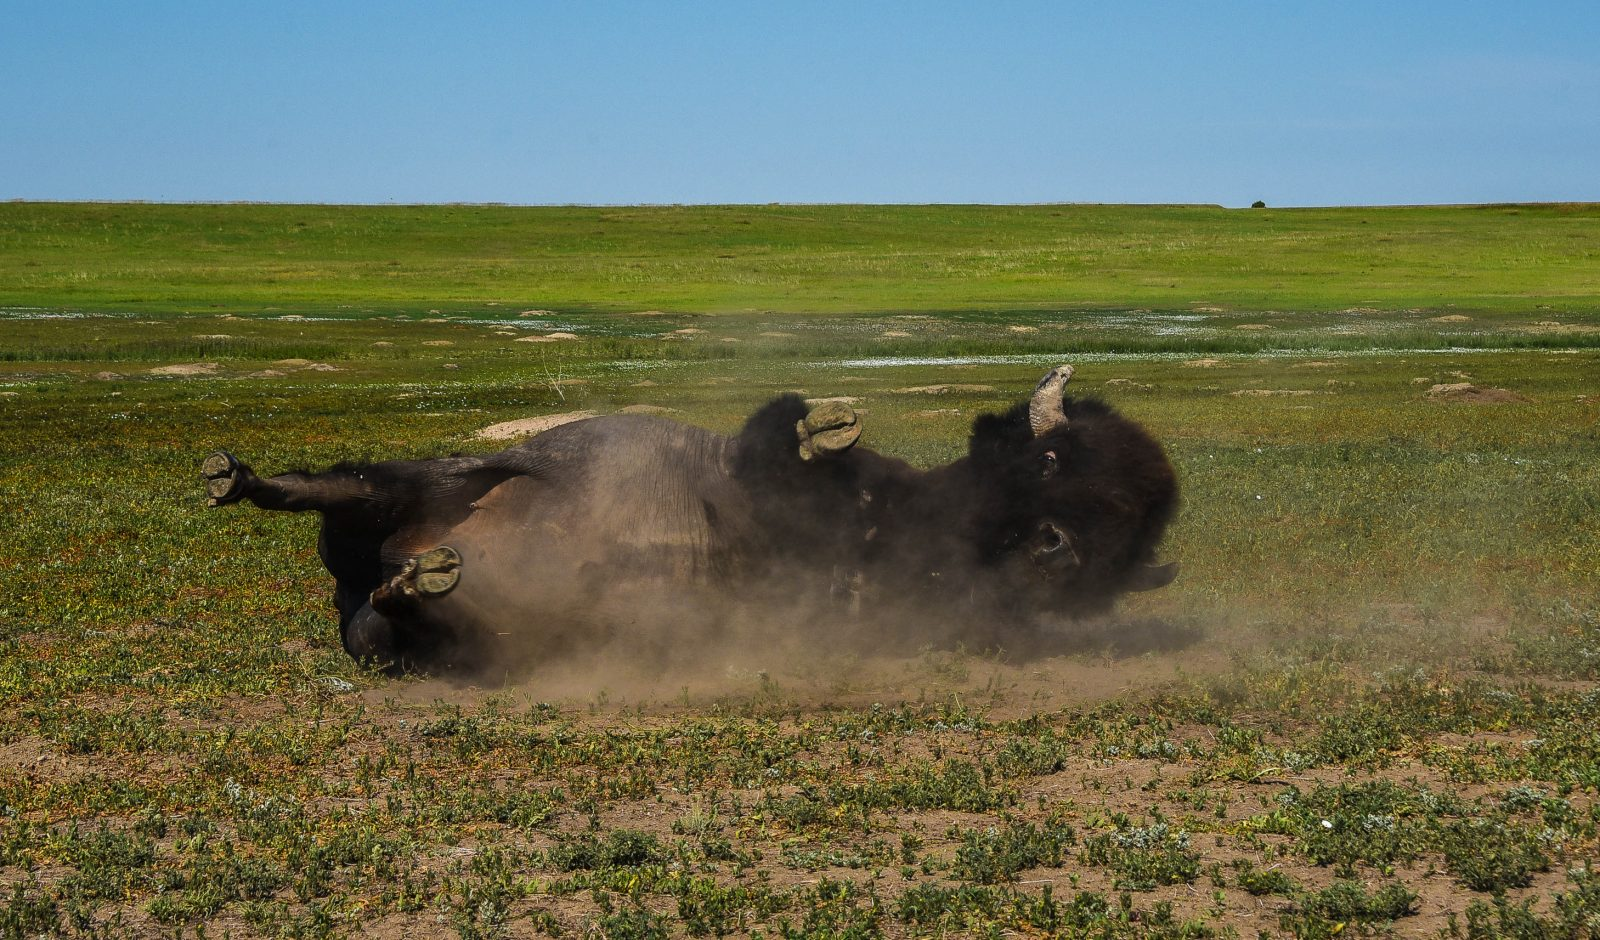 Scratching an Itch in the Badlands